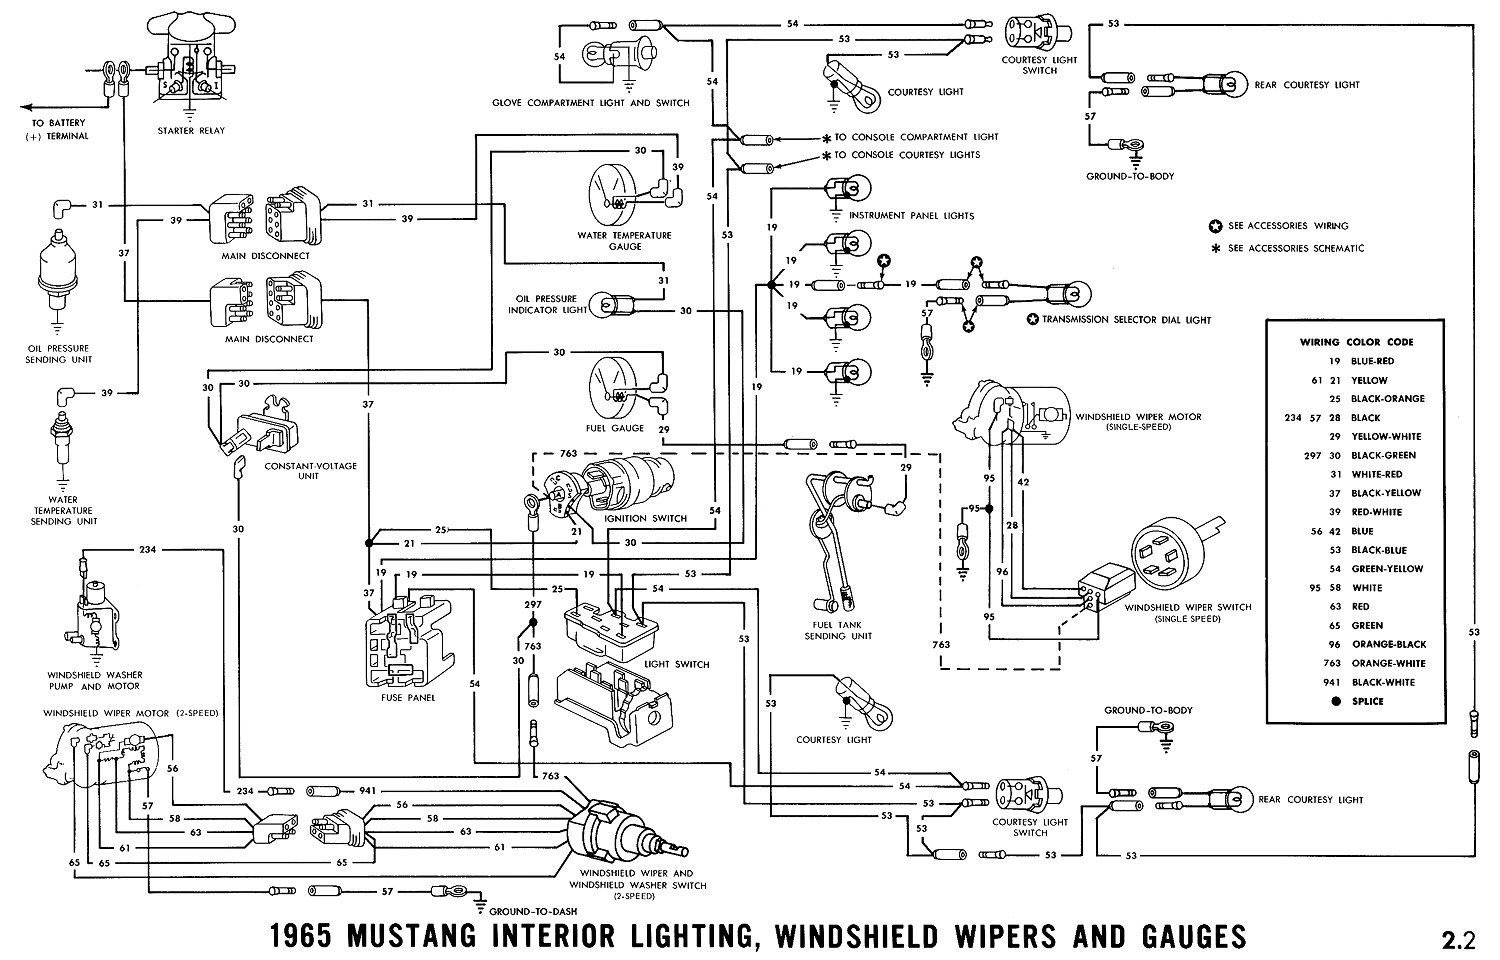 1965g 02 ford mustang turn signal wiring diagram wiring diagram simonand 1970 mustang wiring diagram at alyssarenee.co